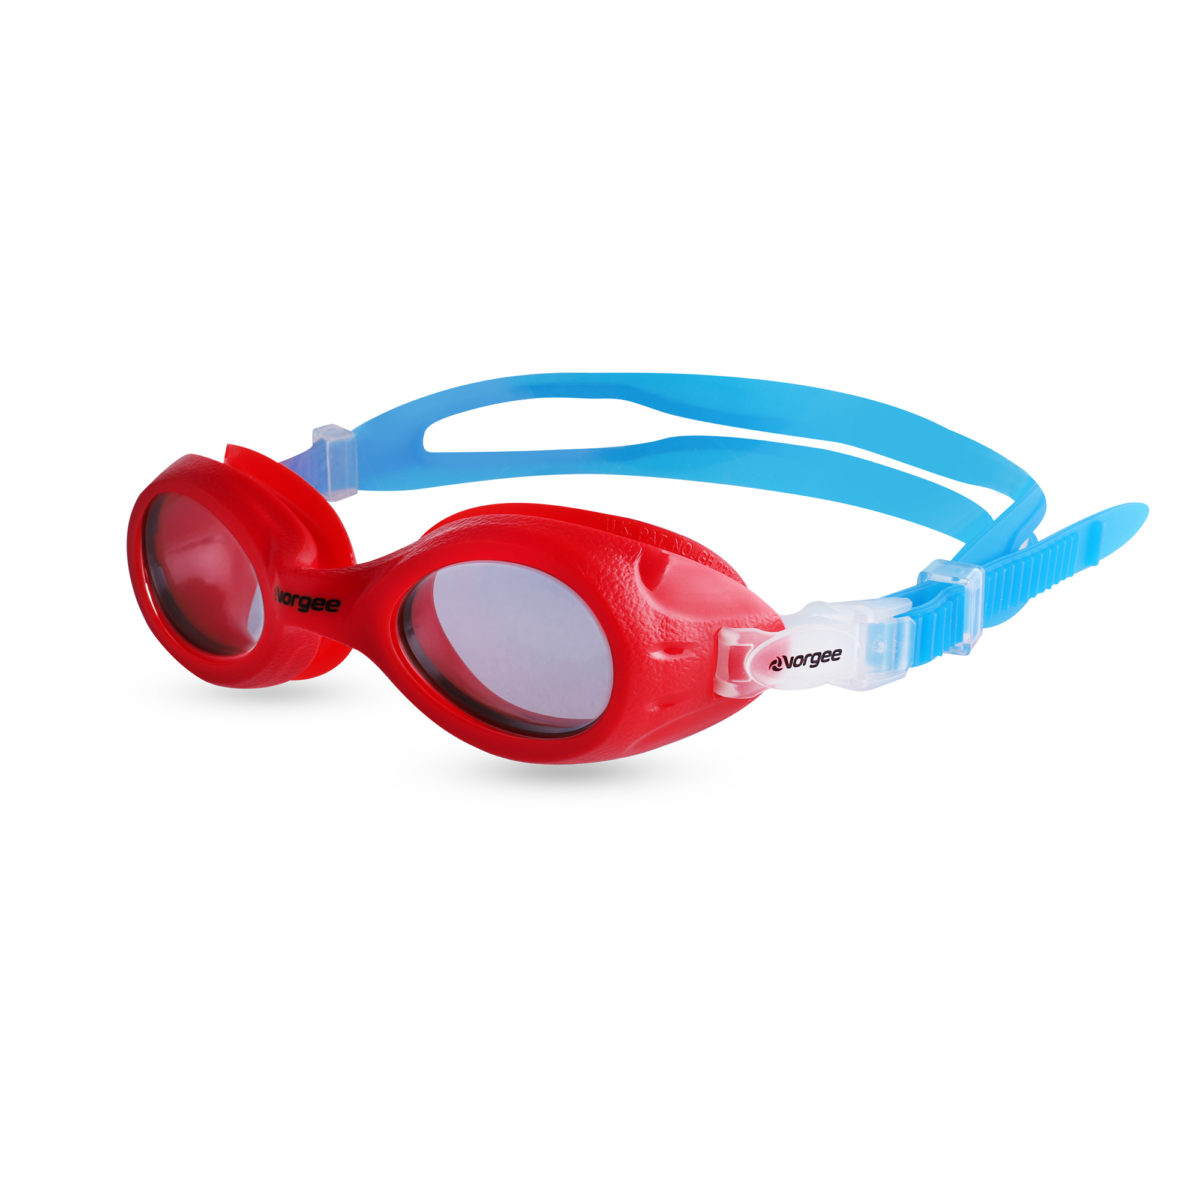 Voyager Jnr Tint - red & blue